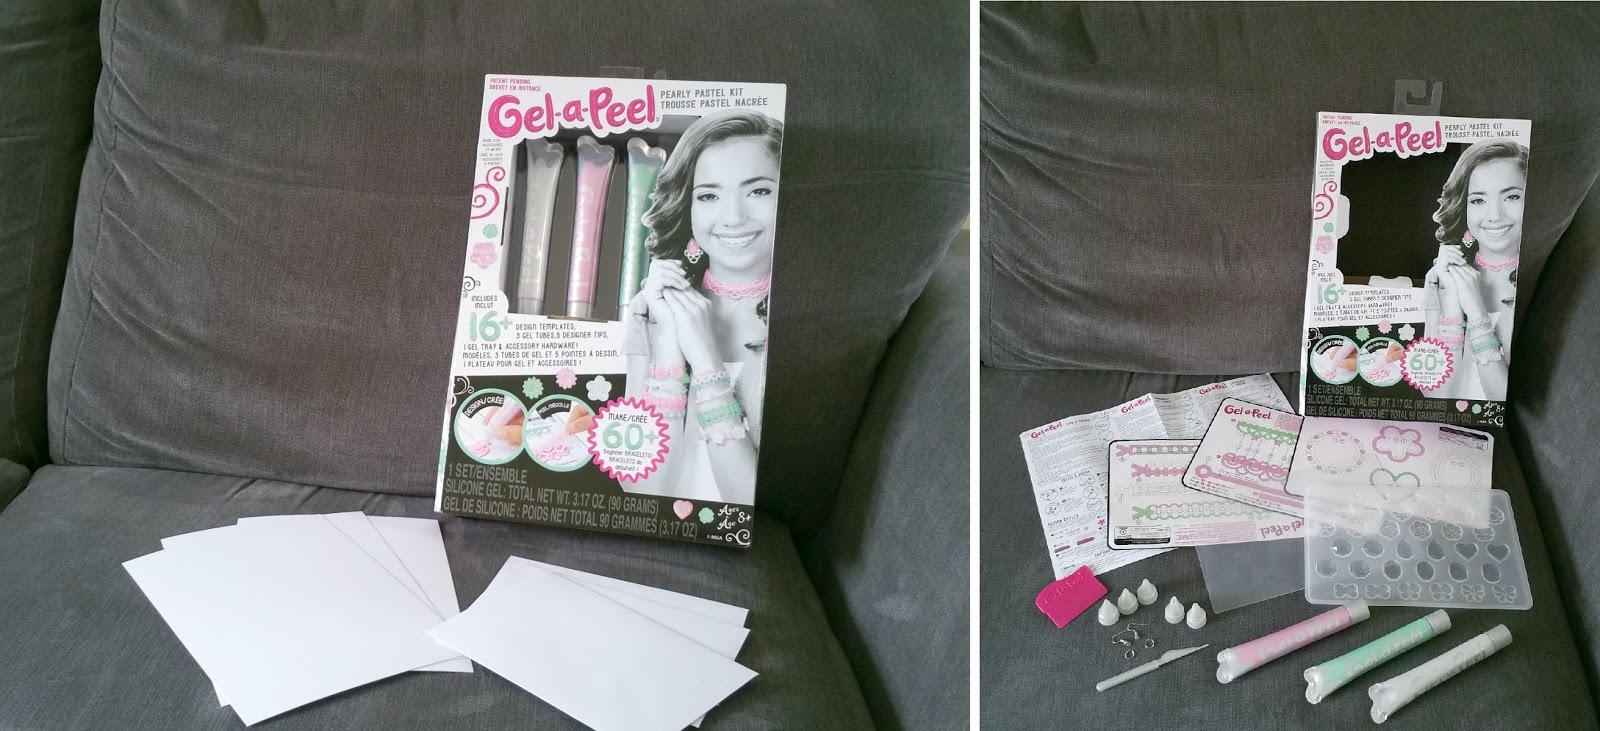 Mothers Day, Gel-a-Peel Pearly Pastel Kit, Mothers Day card crafting